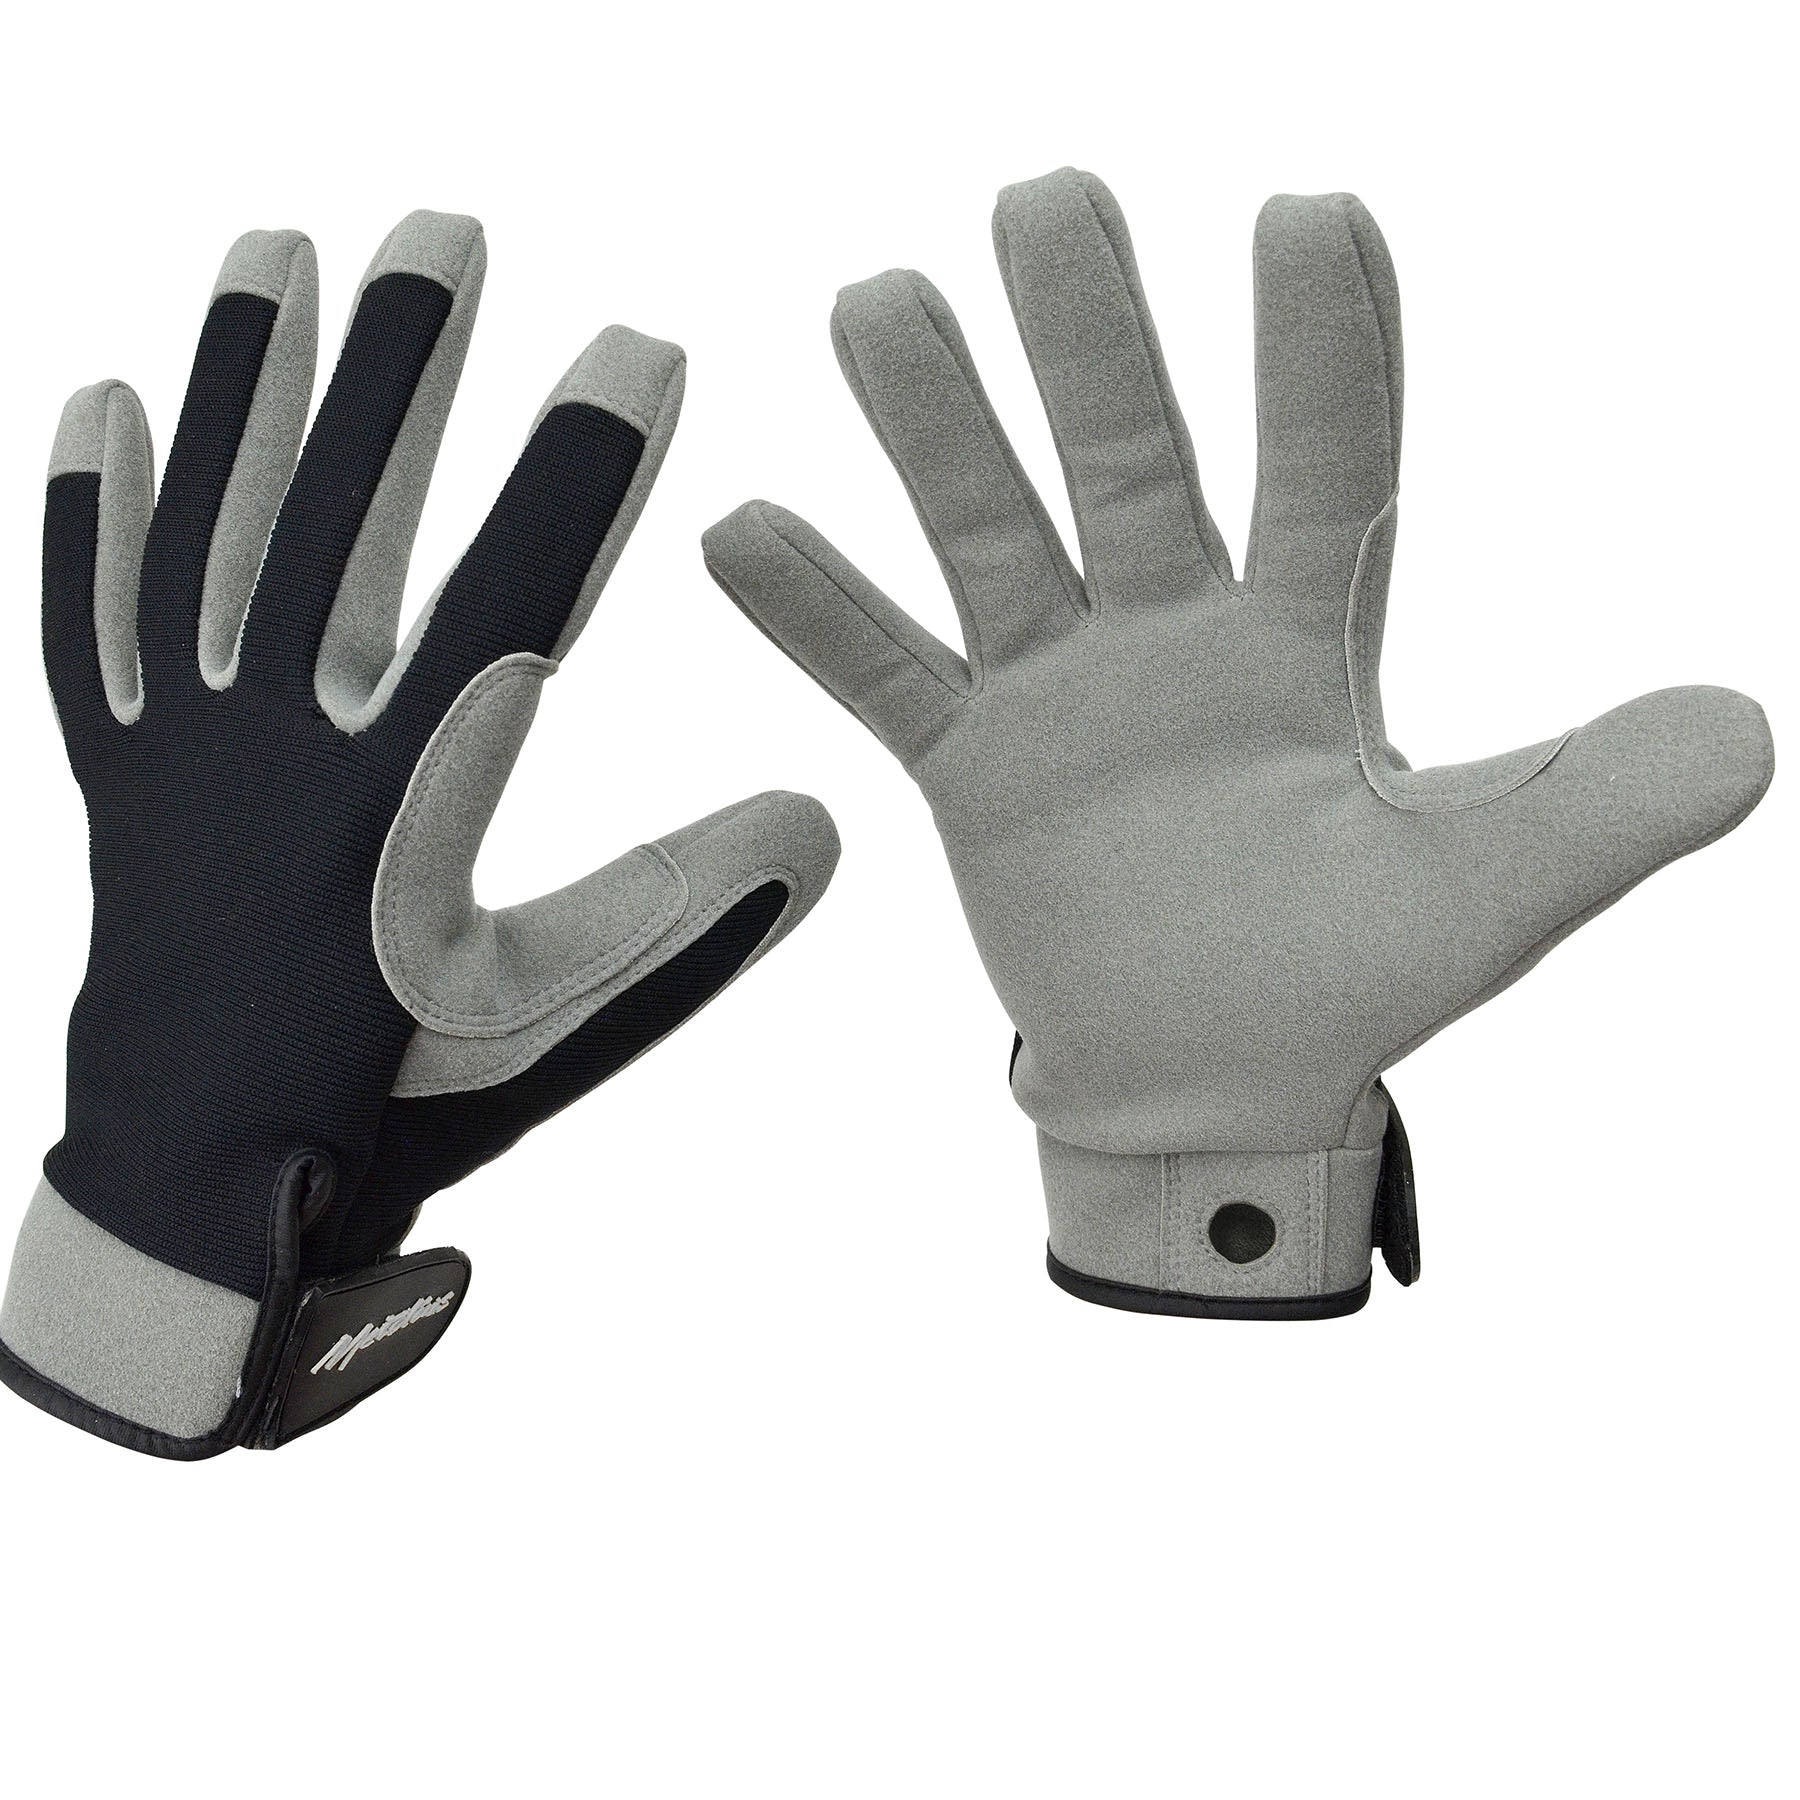 A photo of the metolius belay slave glove